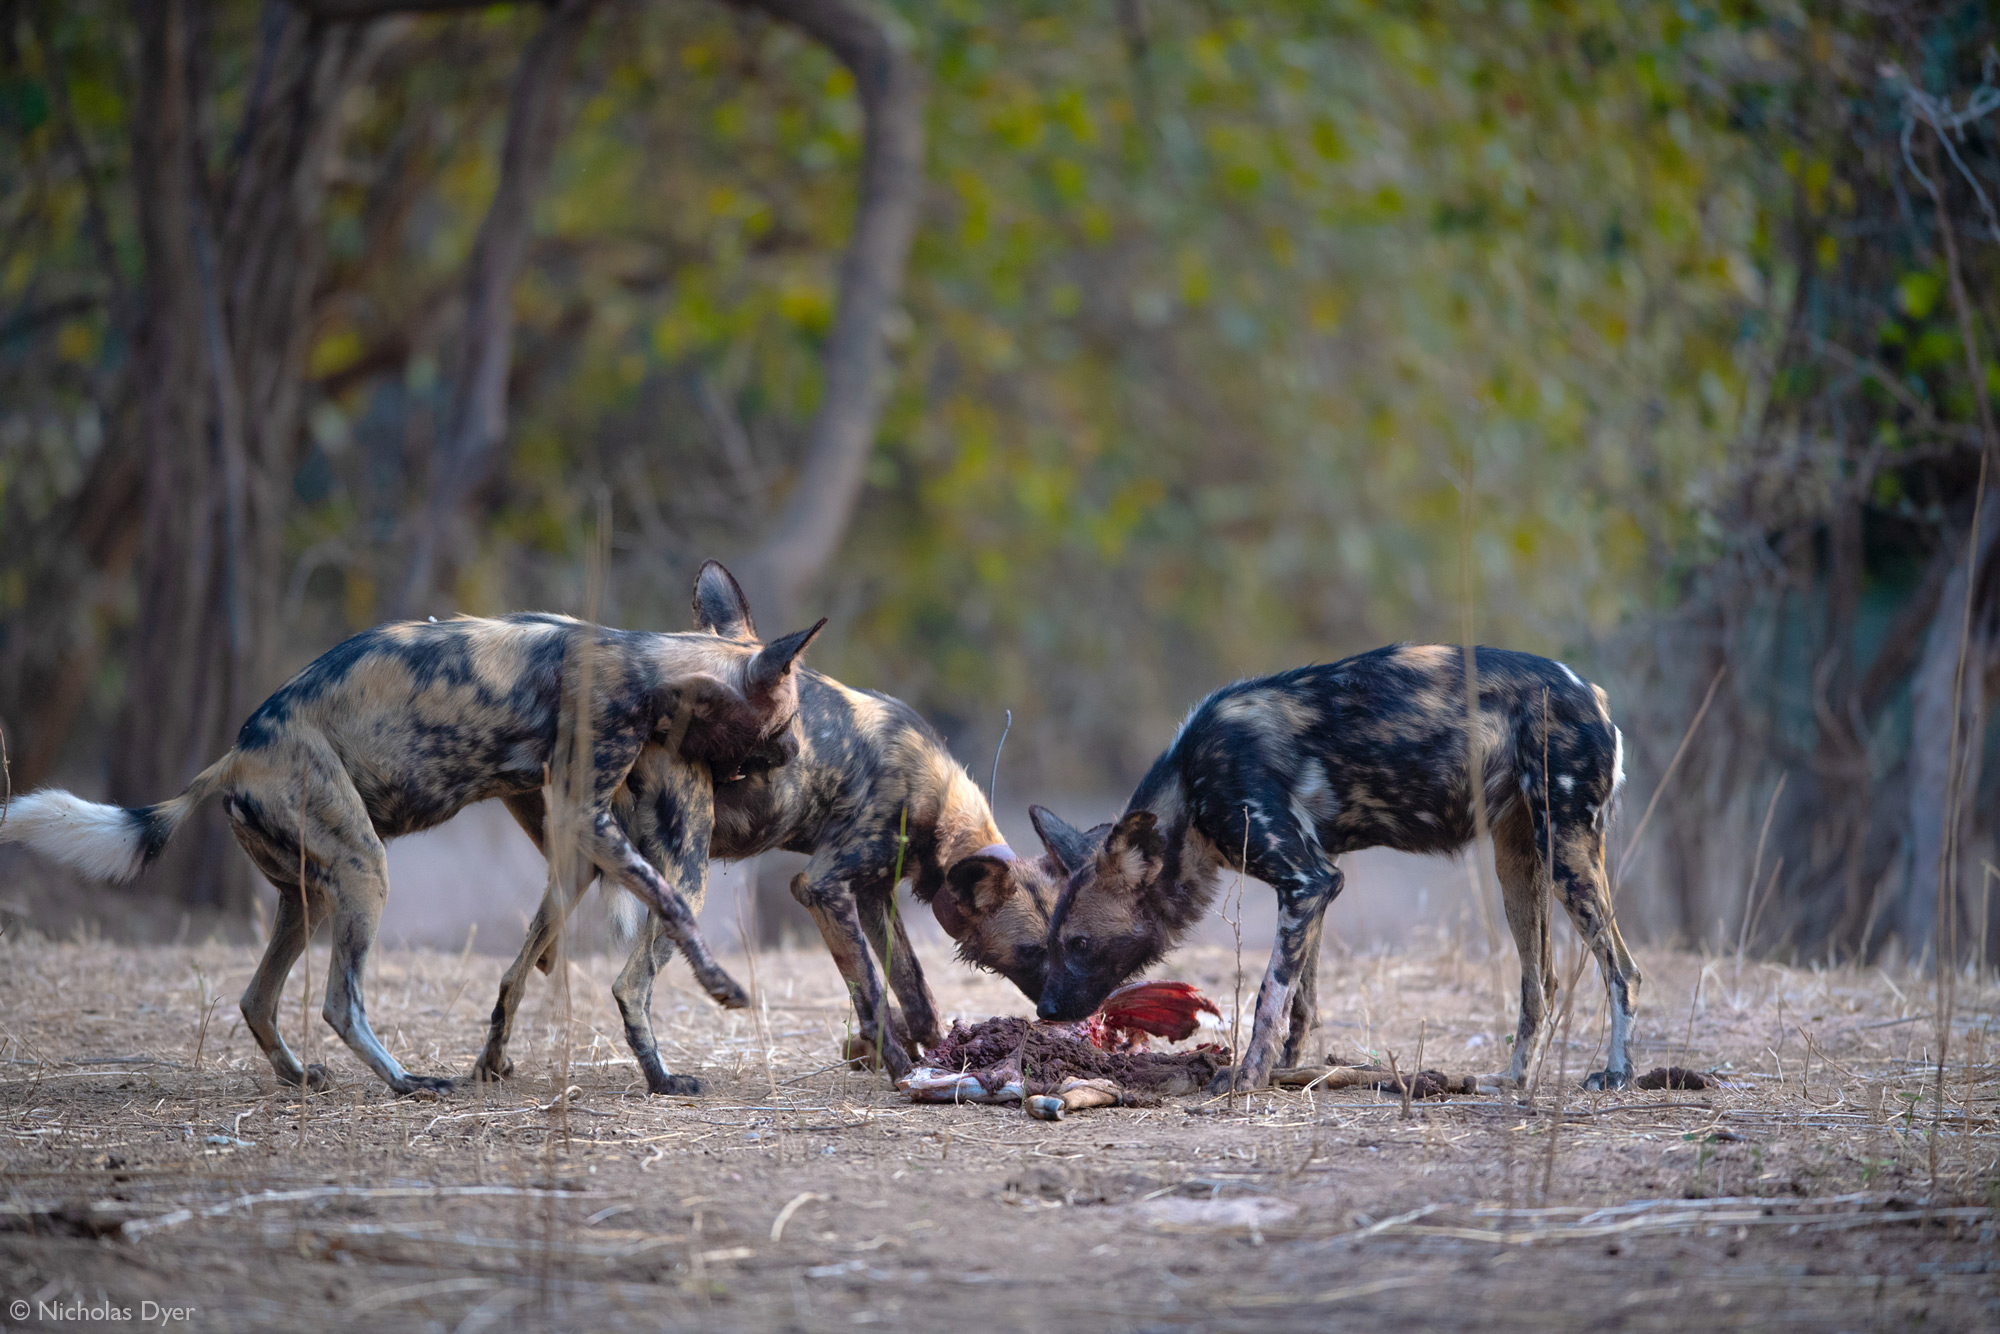 Three painted wolves, African wild dogs in Mana Pools National Park, Zimbabwe